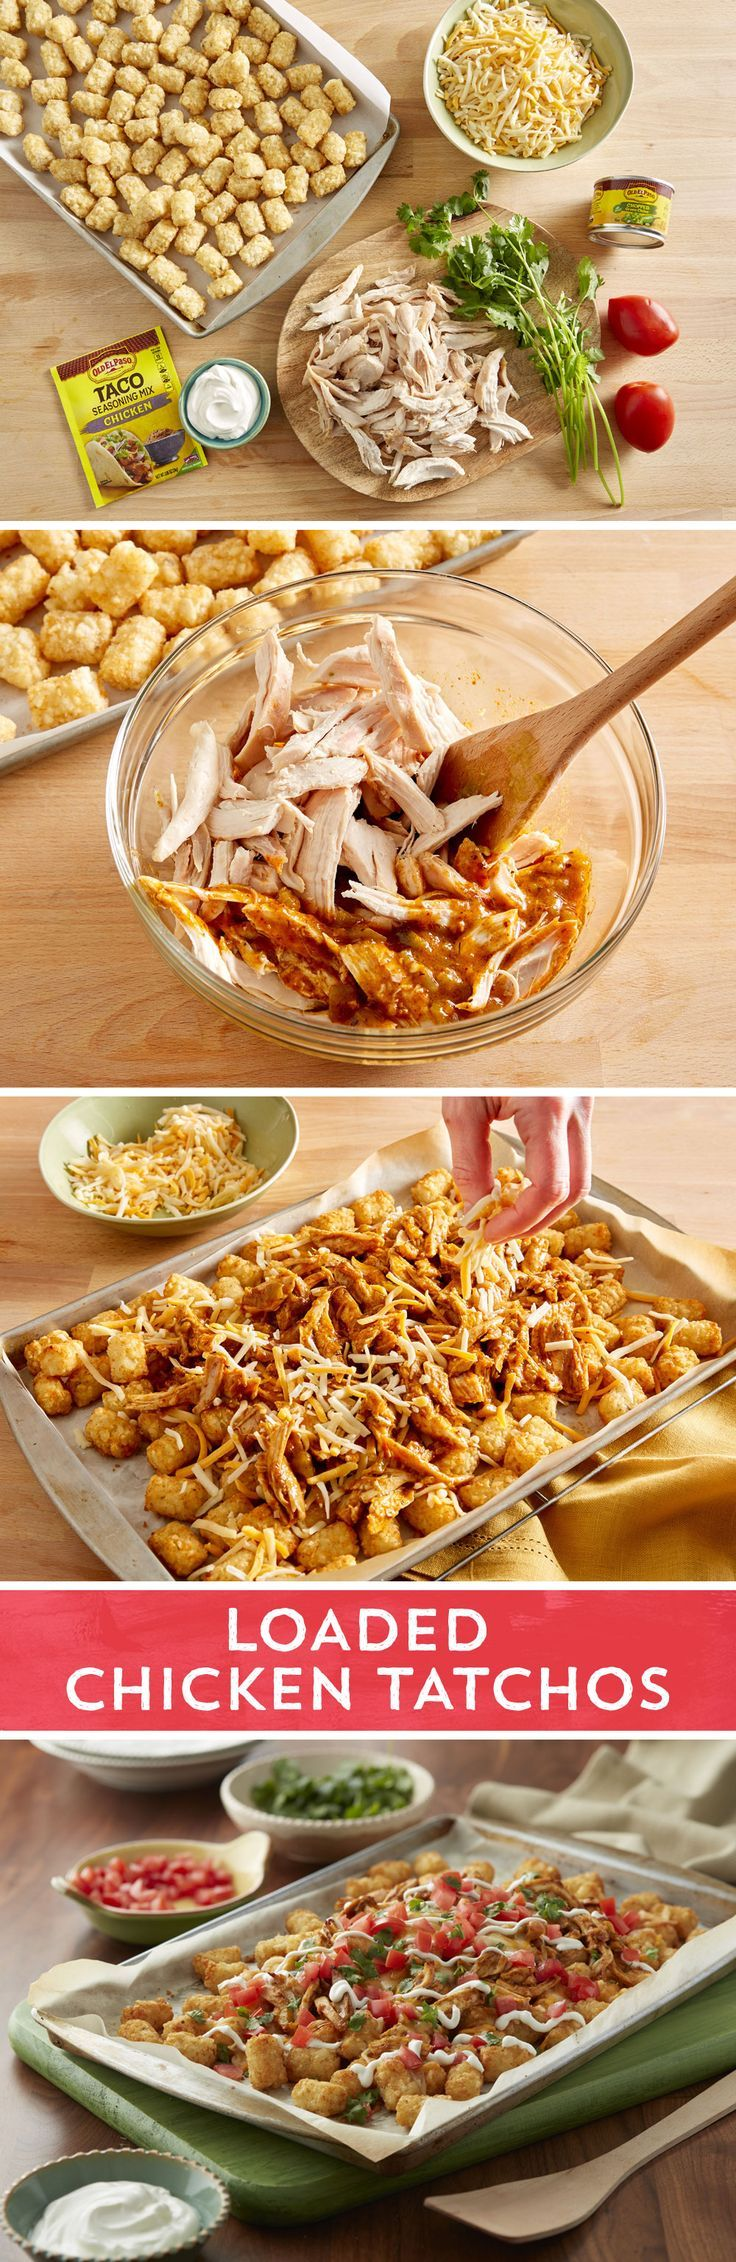 Why should you have to choose between your love for nachos and your desire for tots? You don't have to with these Loaded Chicken Totchos! Top baked tots with Old El Paso™ green chiles, shredded chicken flavored with Old El Paso™ chicken taco seasoning, and cheese before putting them back in the oven. Finish it off with your favorite nacho fixings and be prepared to never have plain tots or regular nachos again.